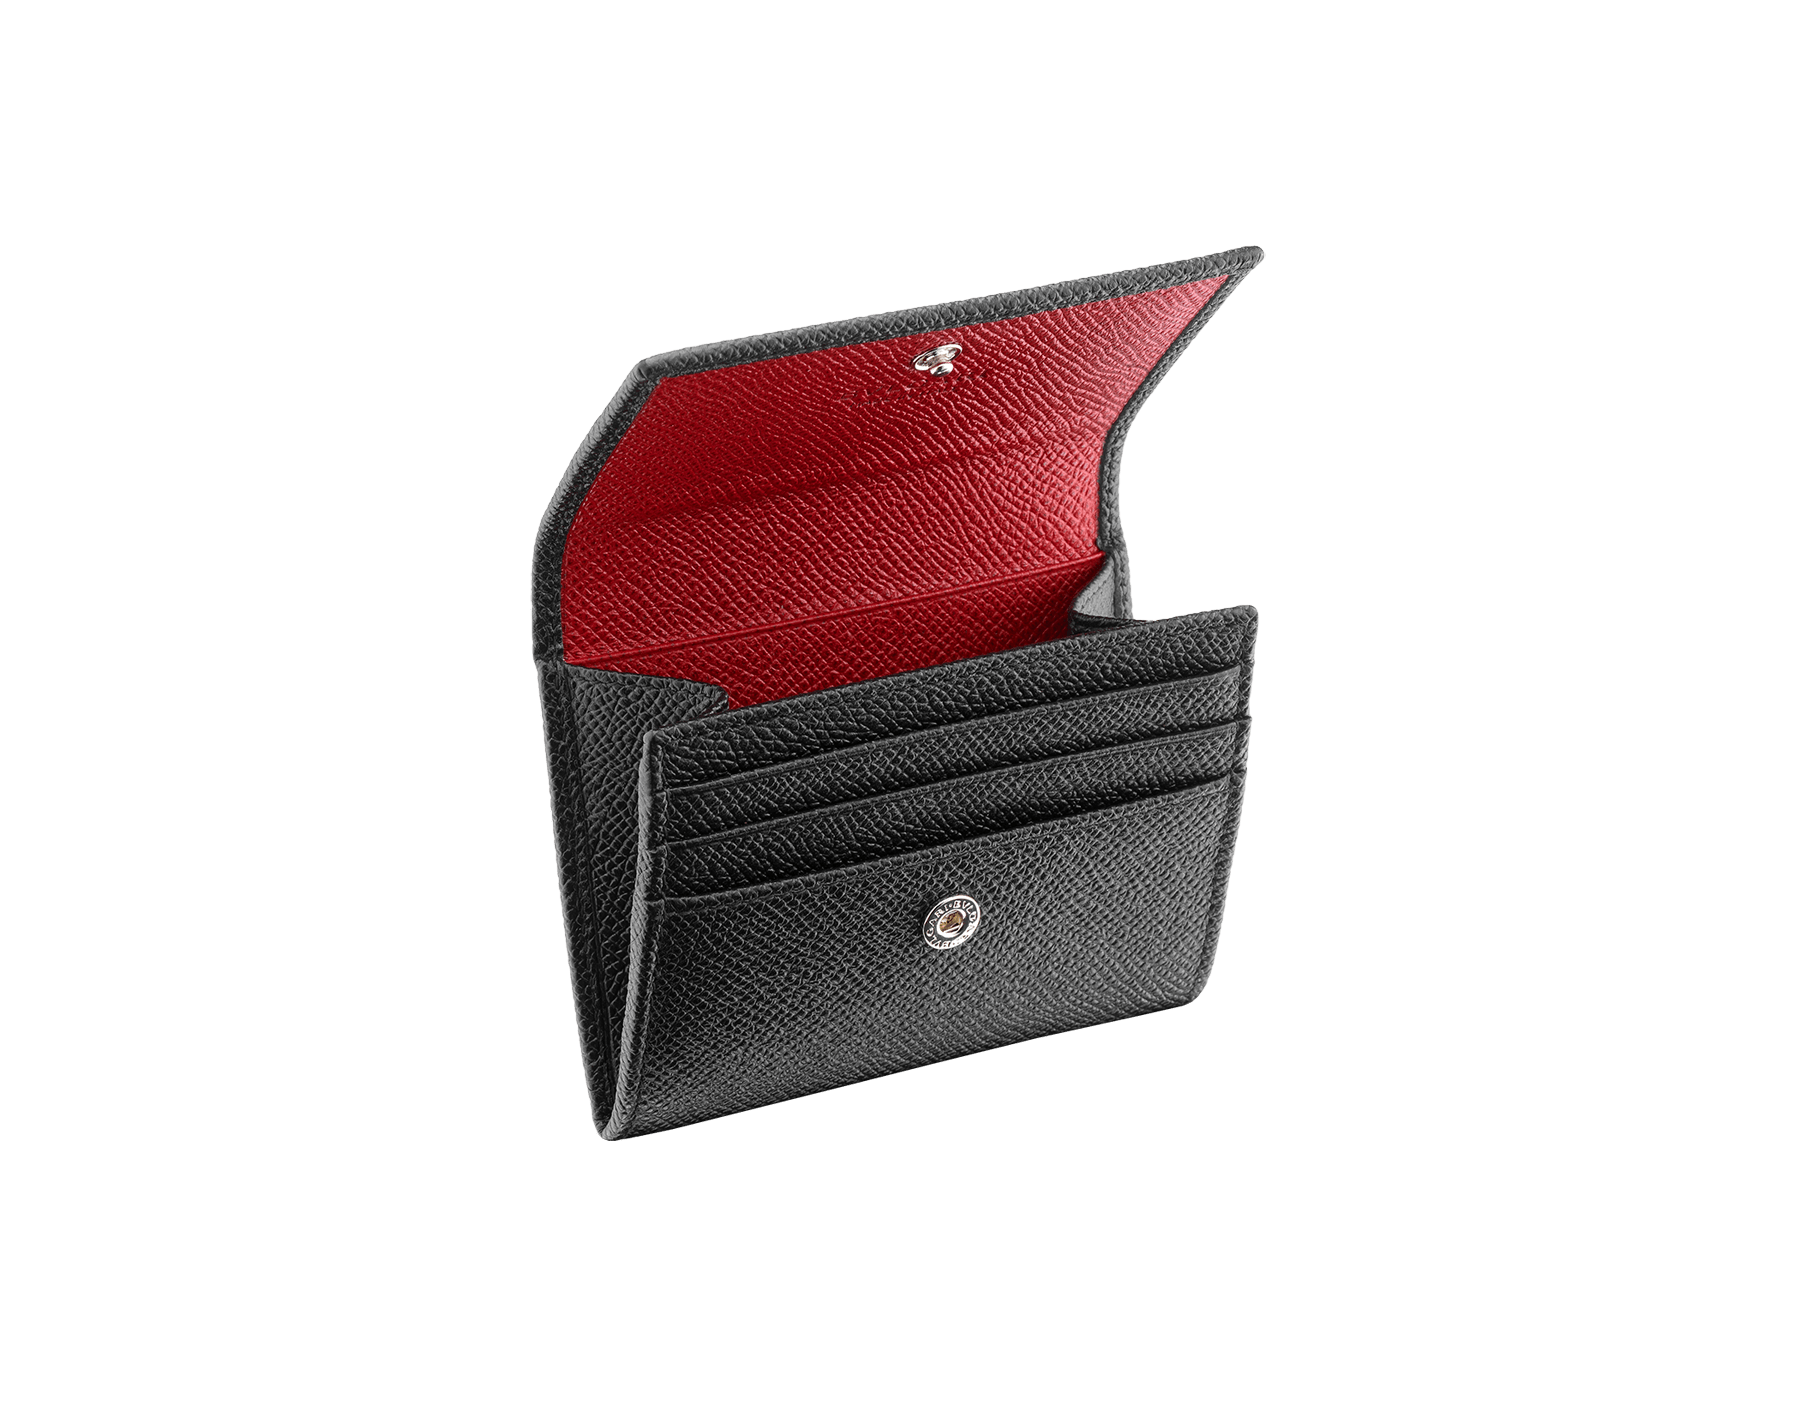 BVLGARI BVLGARI coins and credit card holder in black and ruby red grain calf leather and black nappa lining. Iconic logo décor in palladium plated brass. 288293 image 2